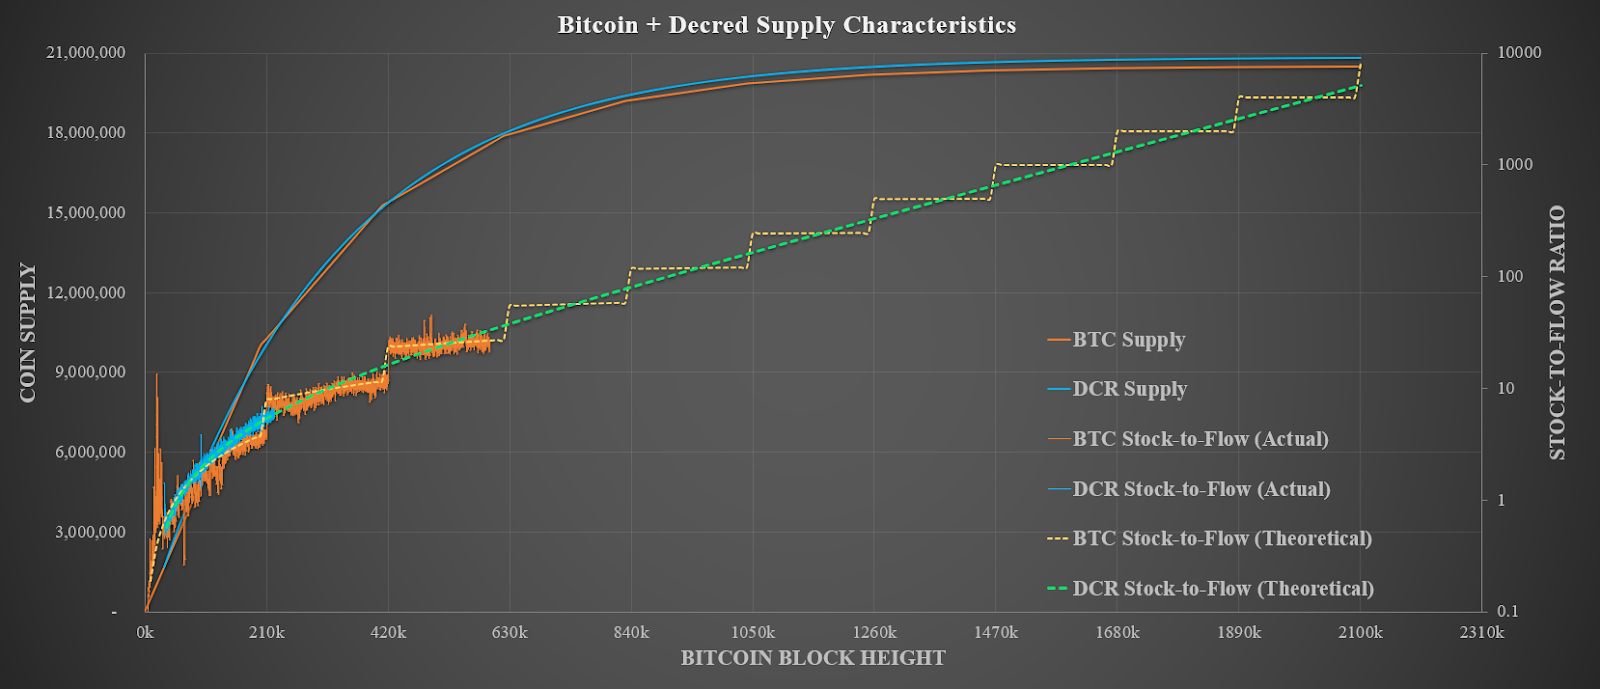 Bitcoin and Decred Supply Characterstics